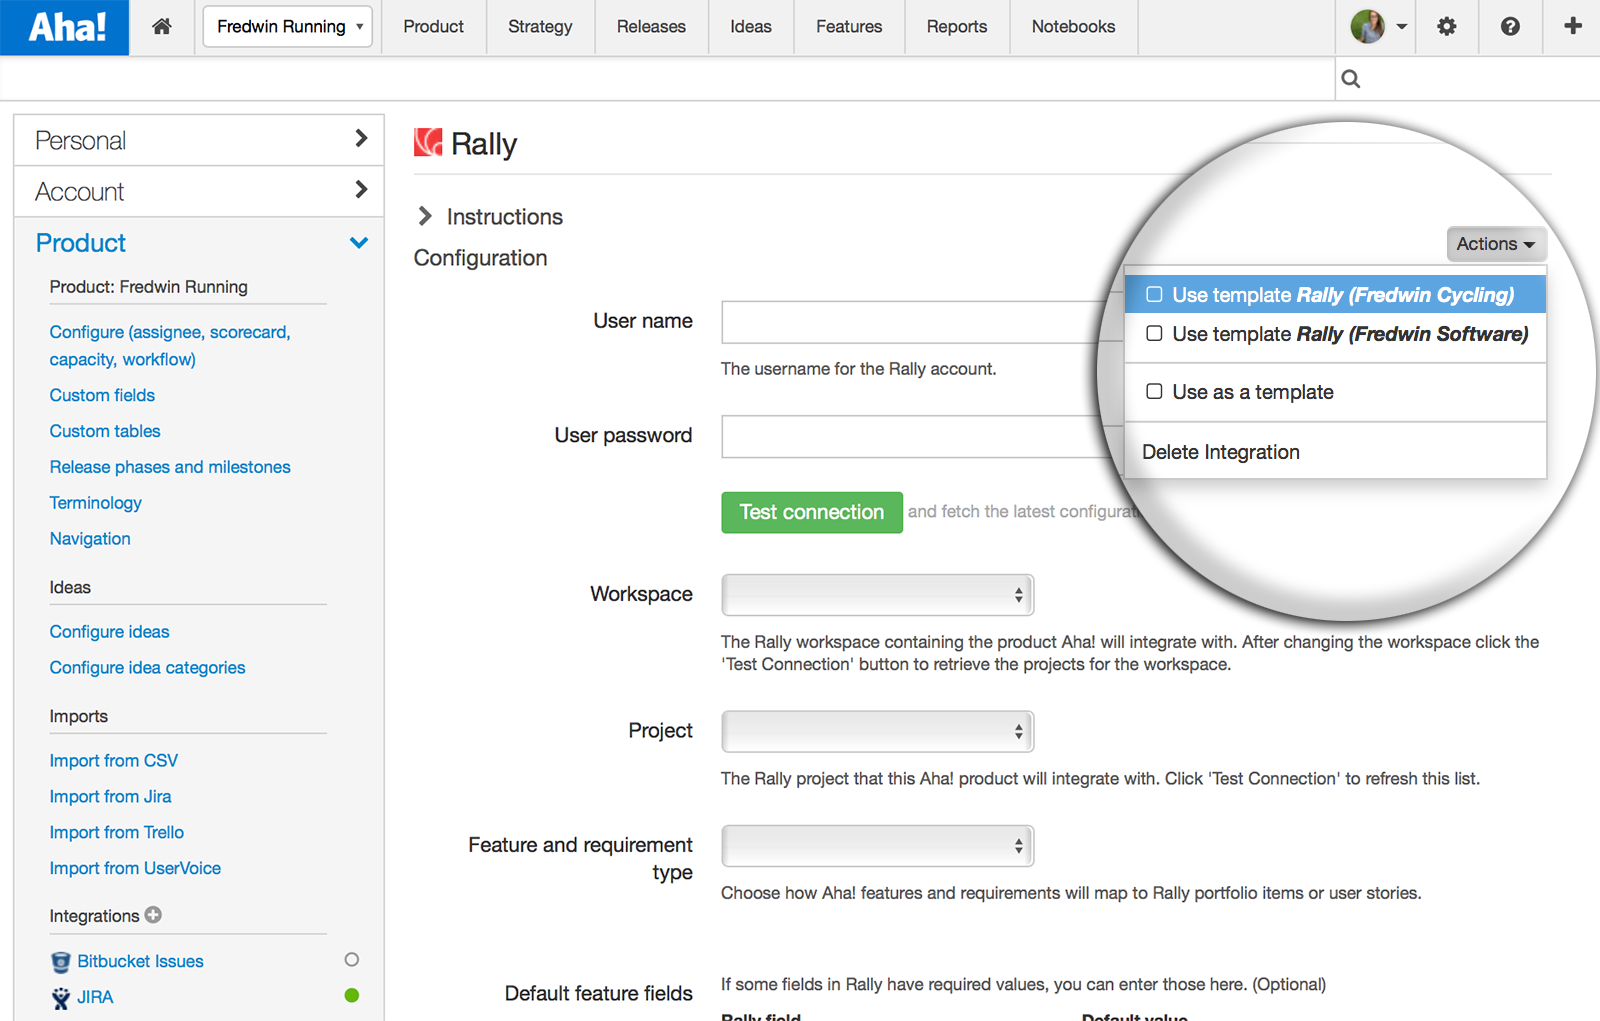 Blog - Aha! + Rally Integration Templates Just Launched - inline image